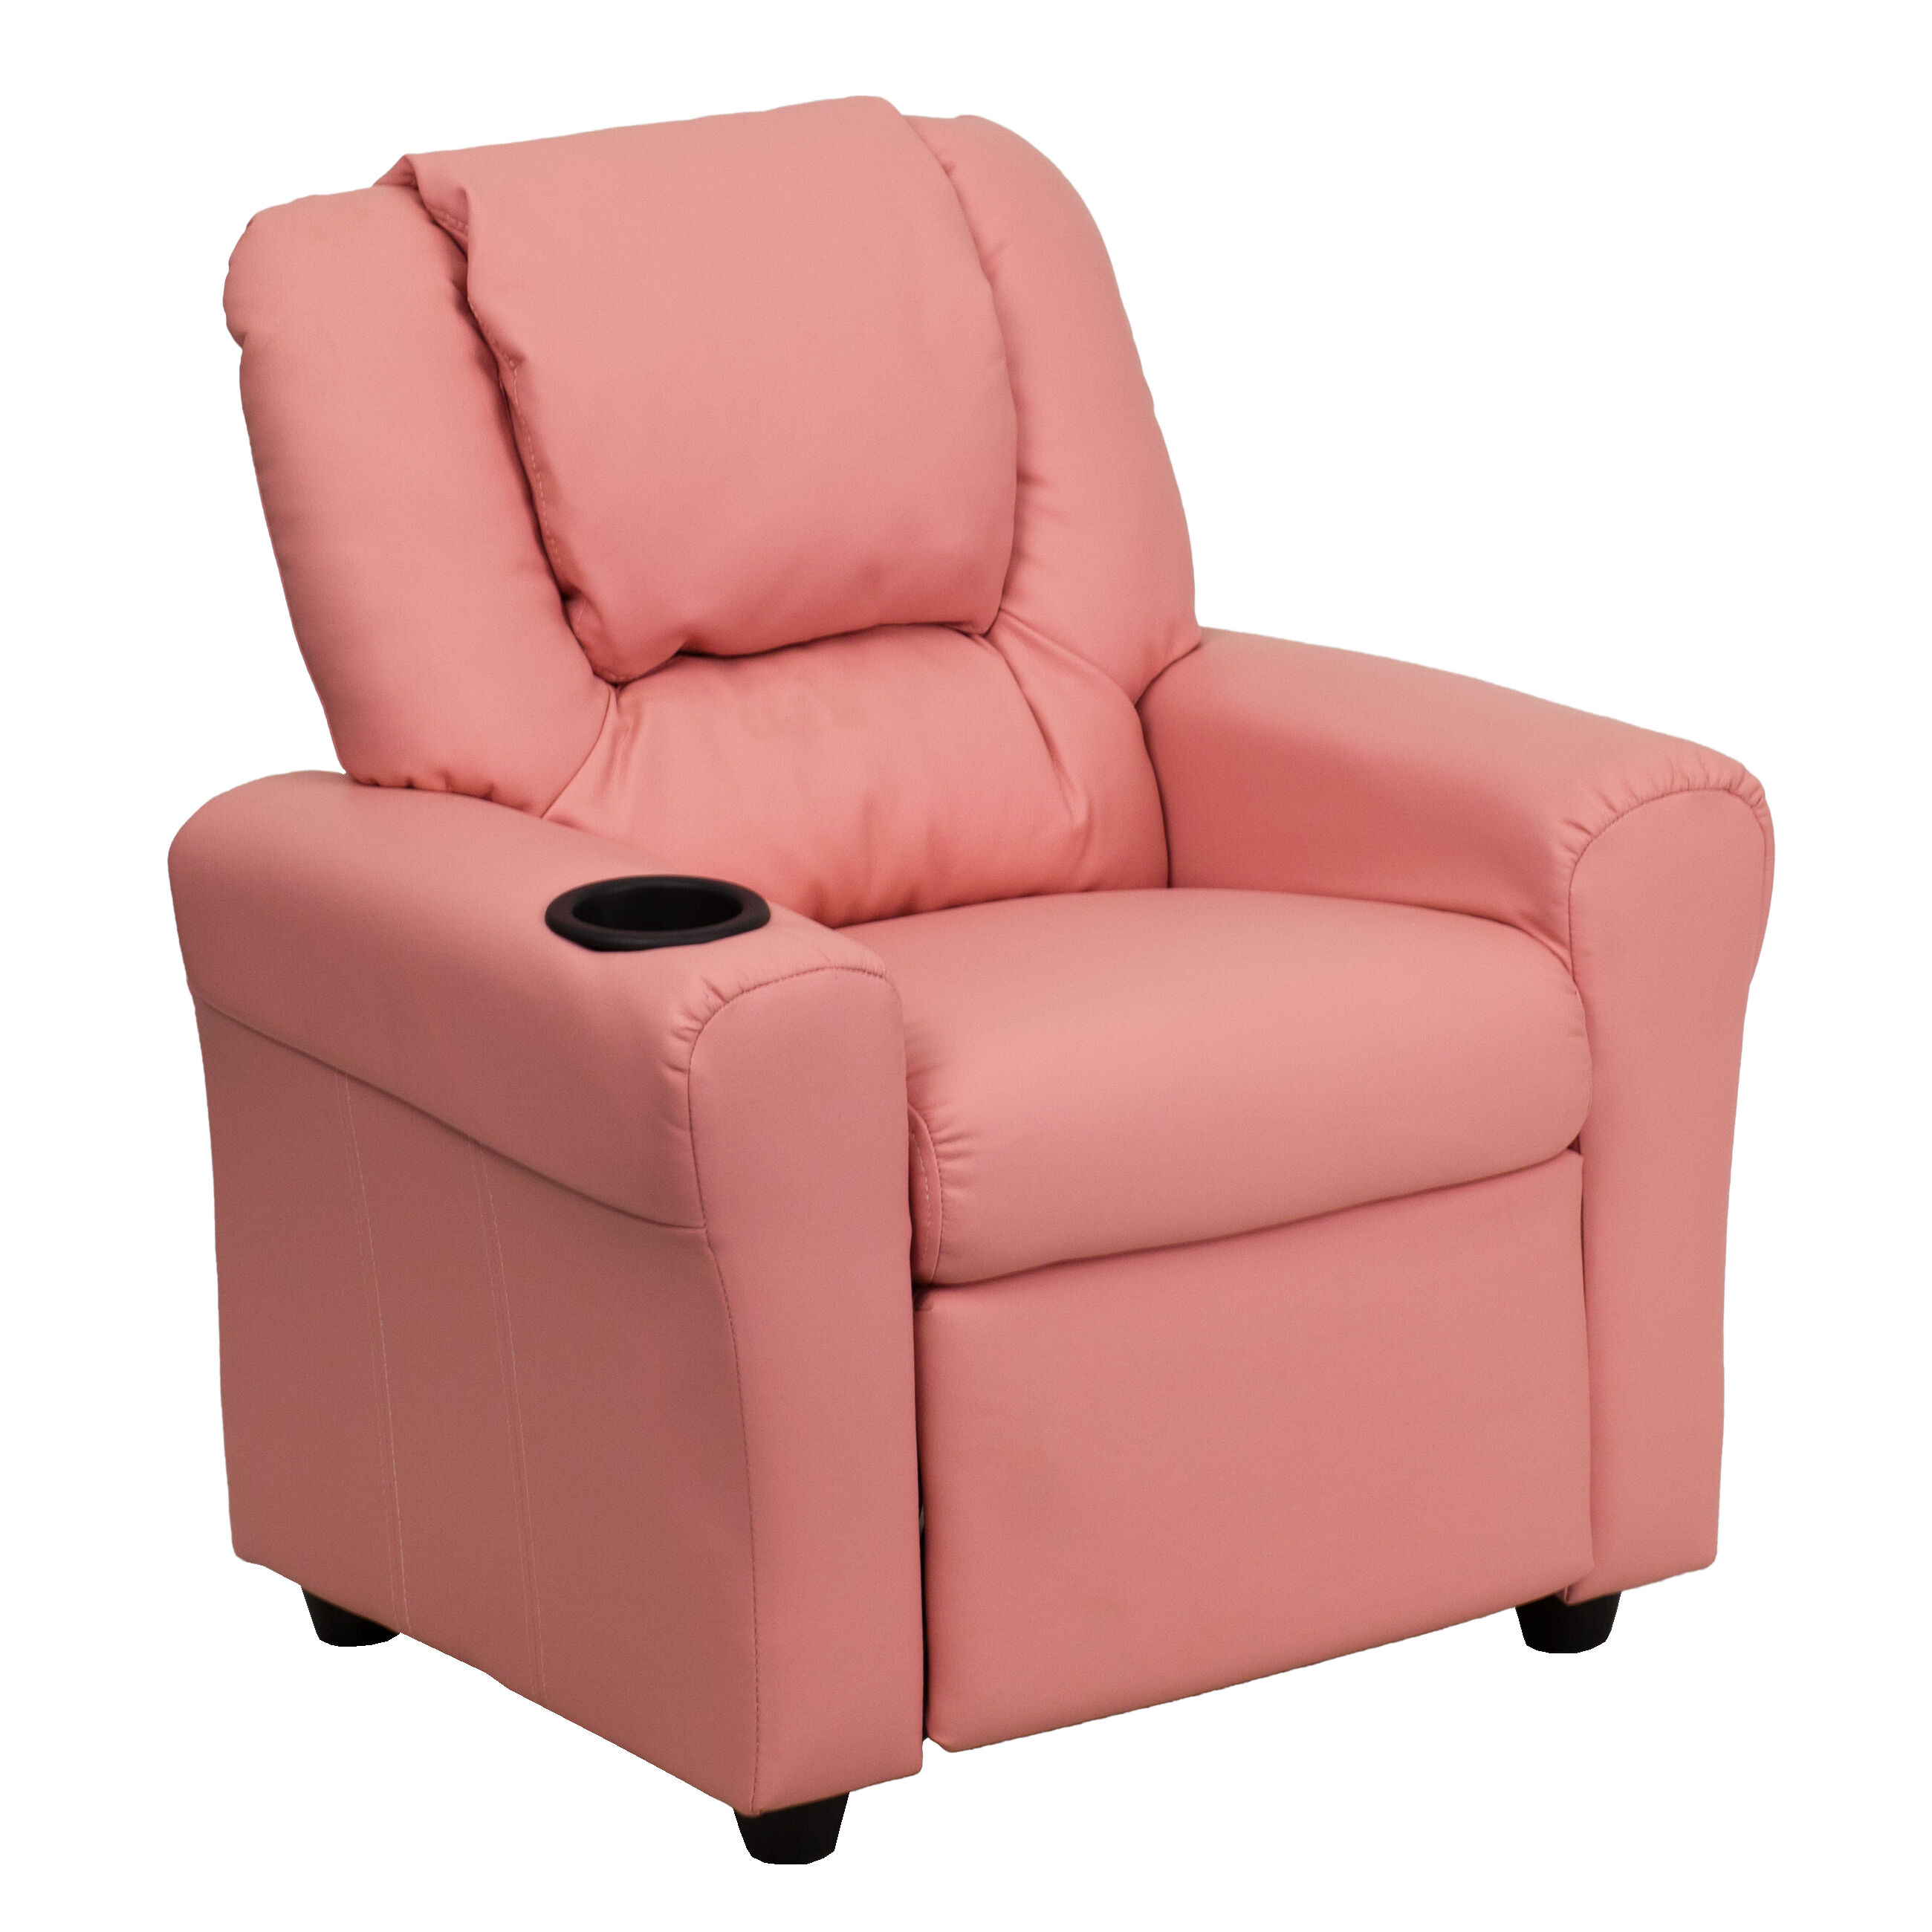 Our Contemporary Pink Vinyl Kids Recliner With Cup Holder And Headrest Is  On Sale Now.